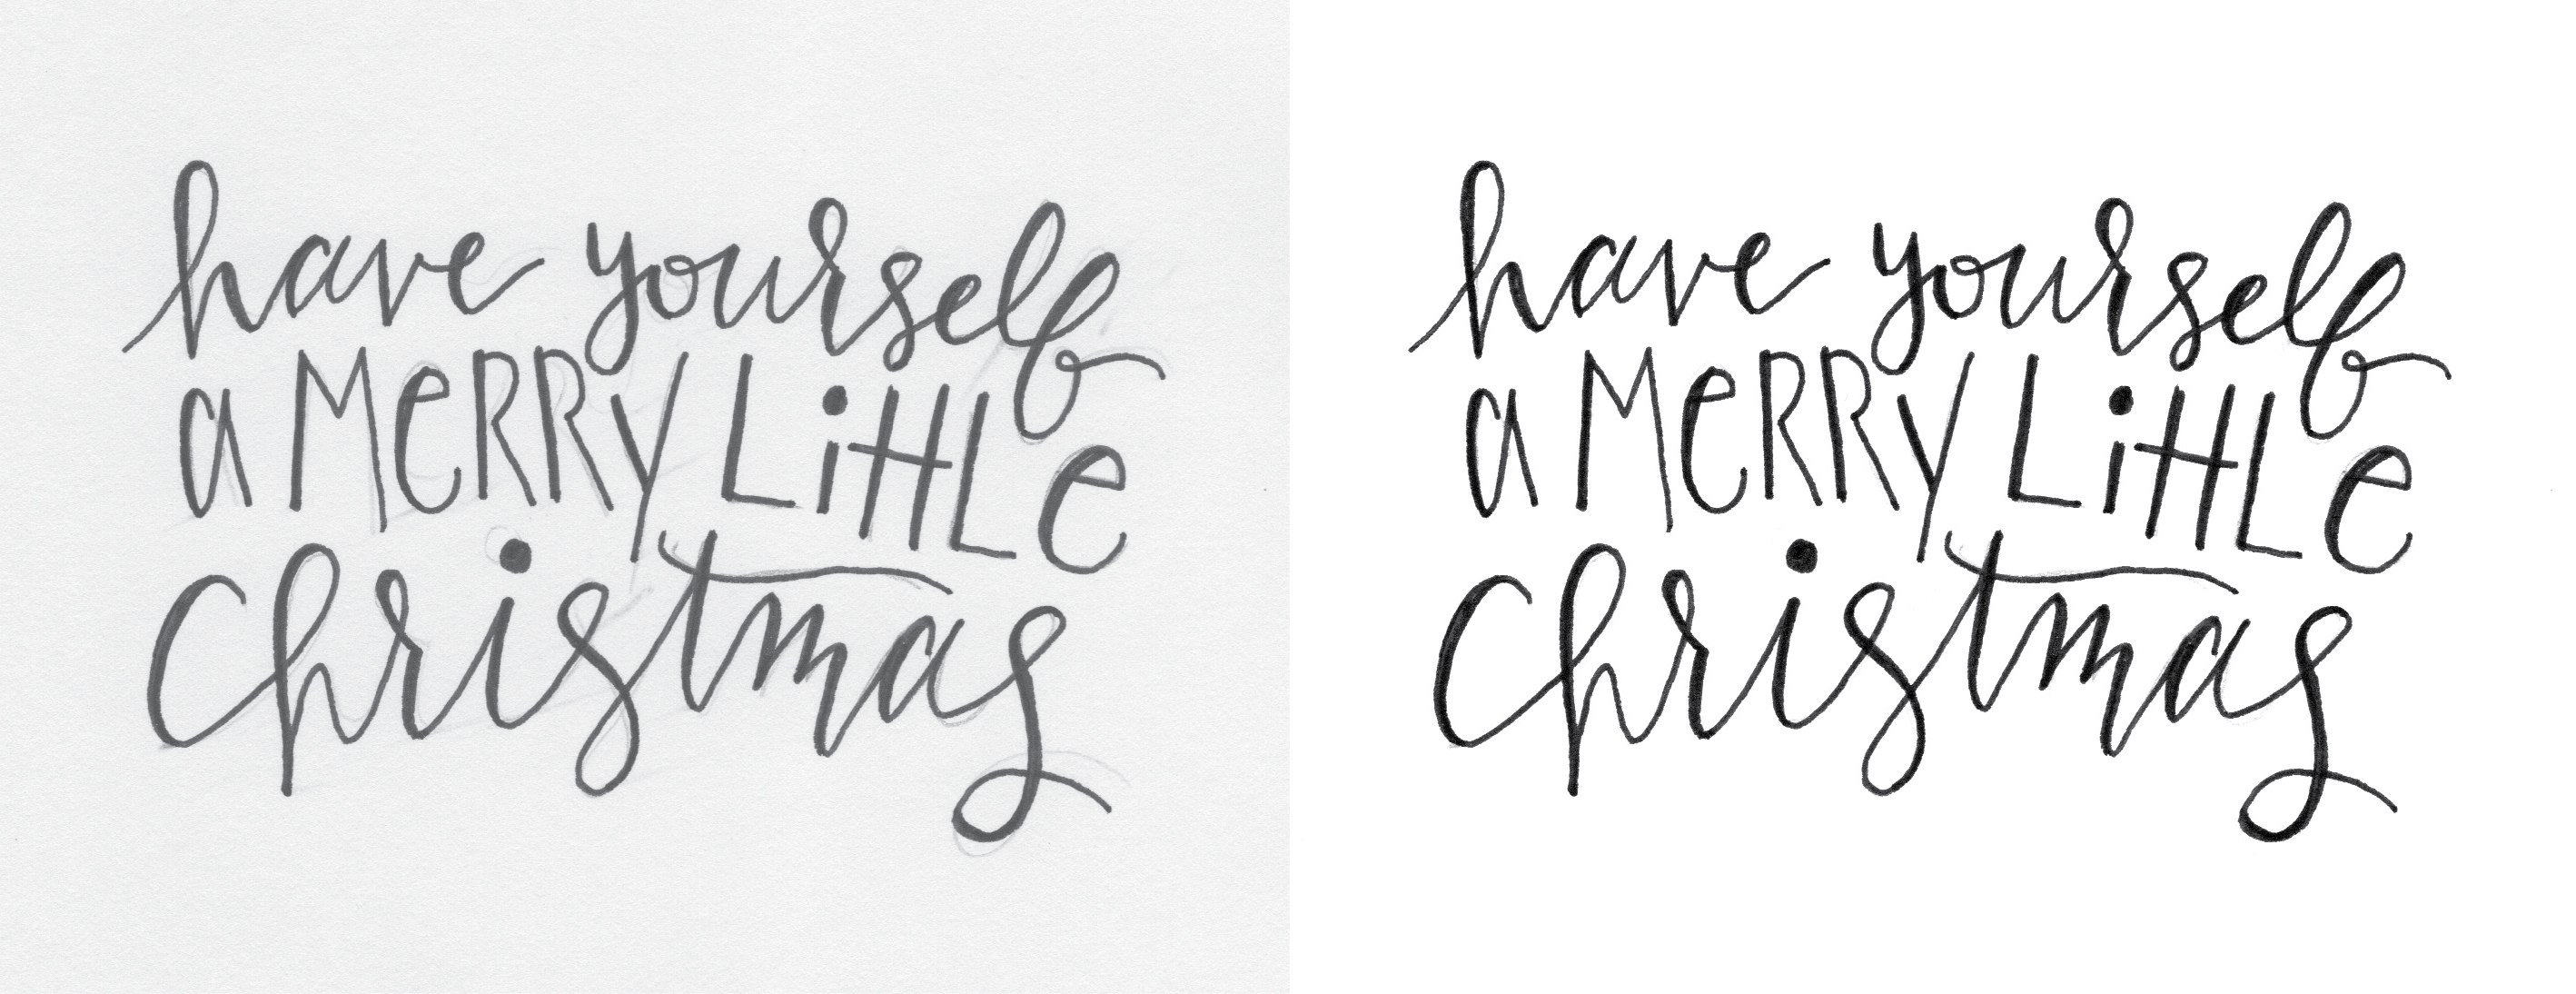 Behind the Designs of Christmas Cards: Have Yourself a Merry Little Christmas sketches